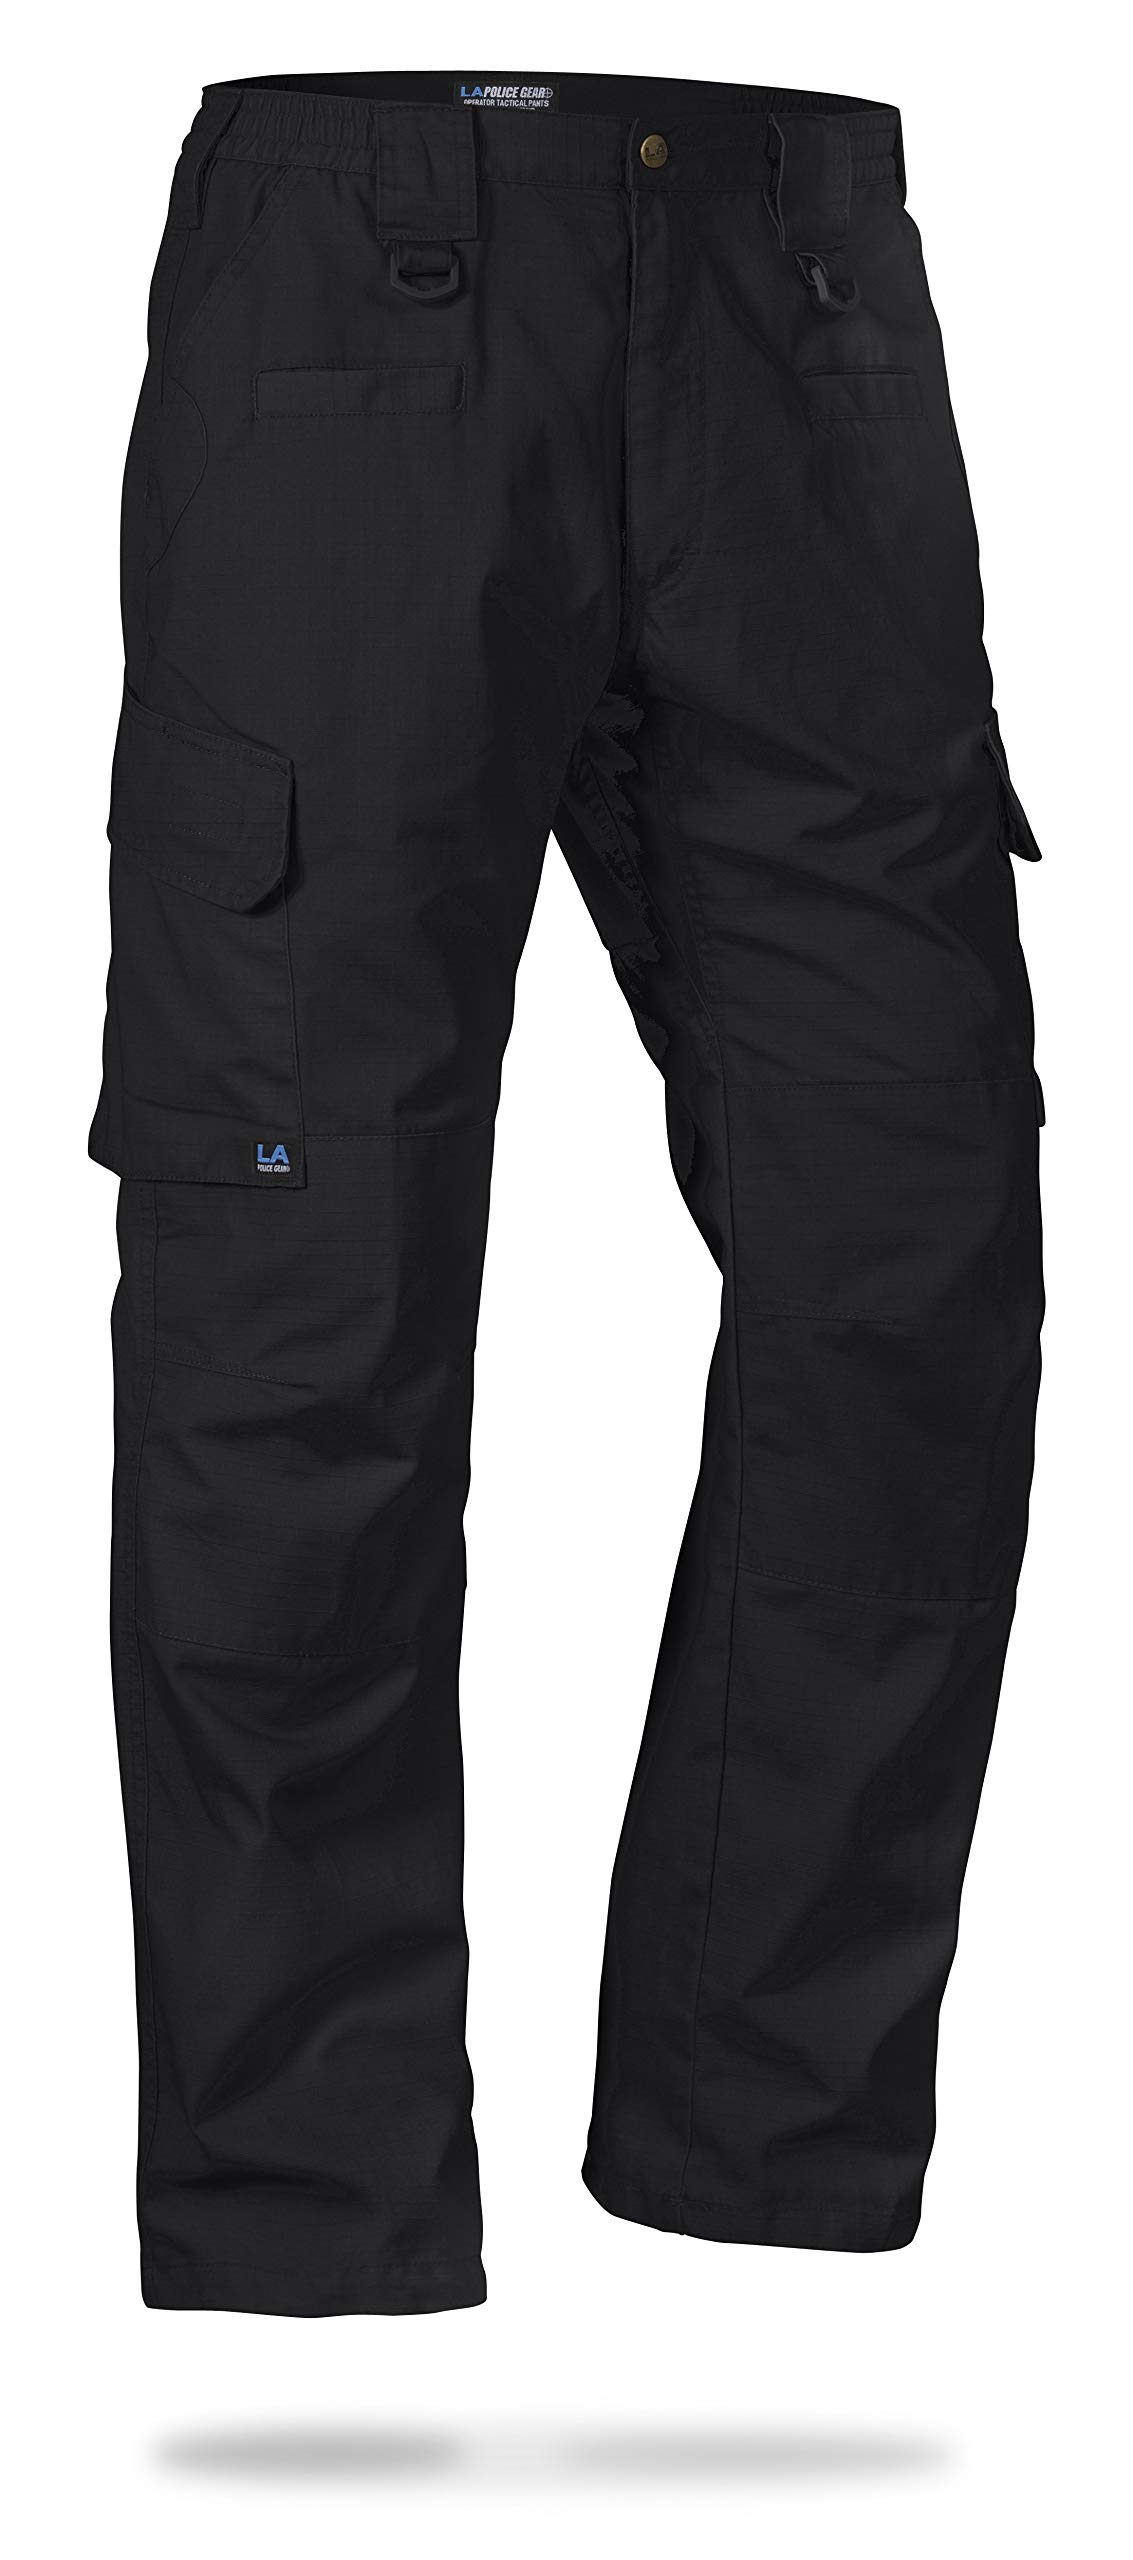 LA Police Gear Men's Water Resistant Operator Tactical Pant with Elastic Waistband Black-42 x 30 by LA Police Gear